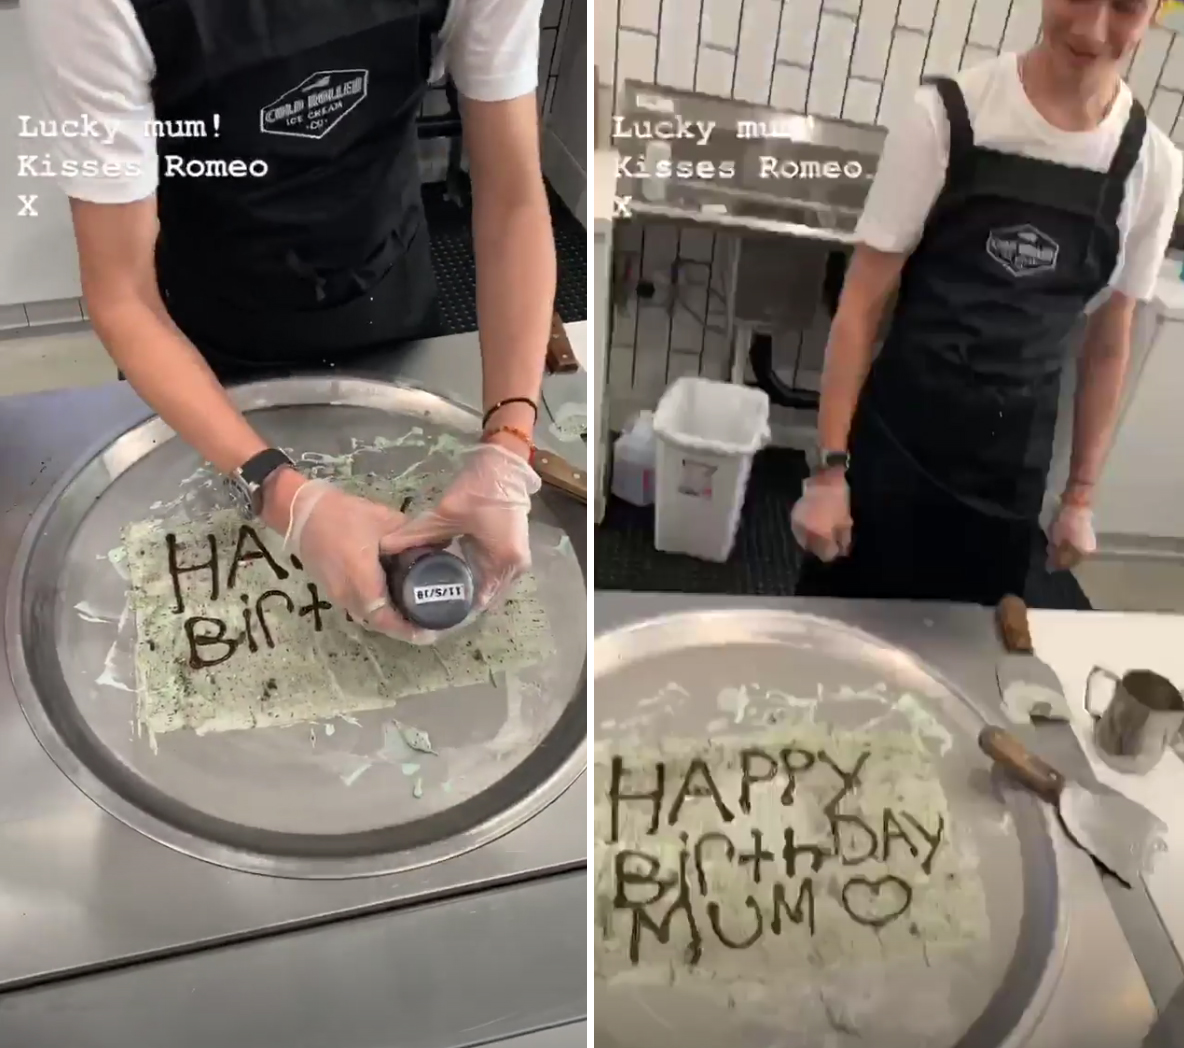 Victoria-Beckham-birthday-Romeo-ice-cream - Posh Spice's sons worked their magic on cold-rolled ice cream.